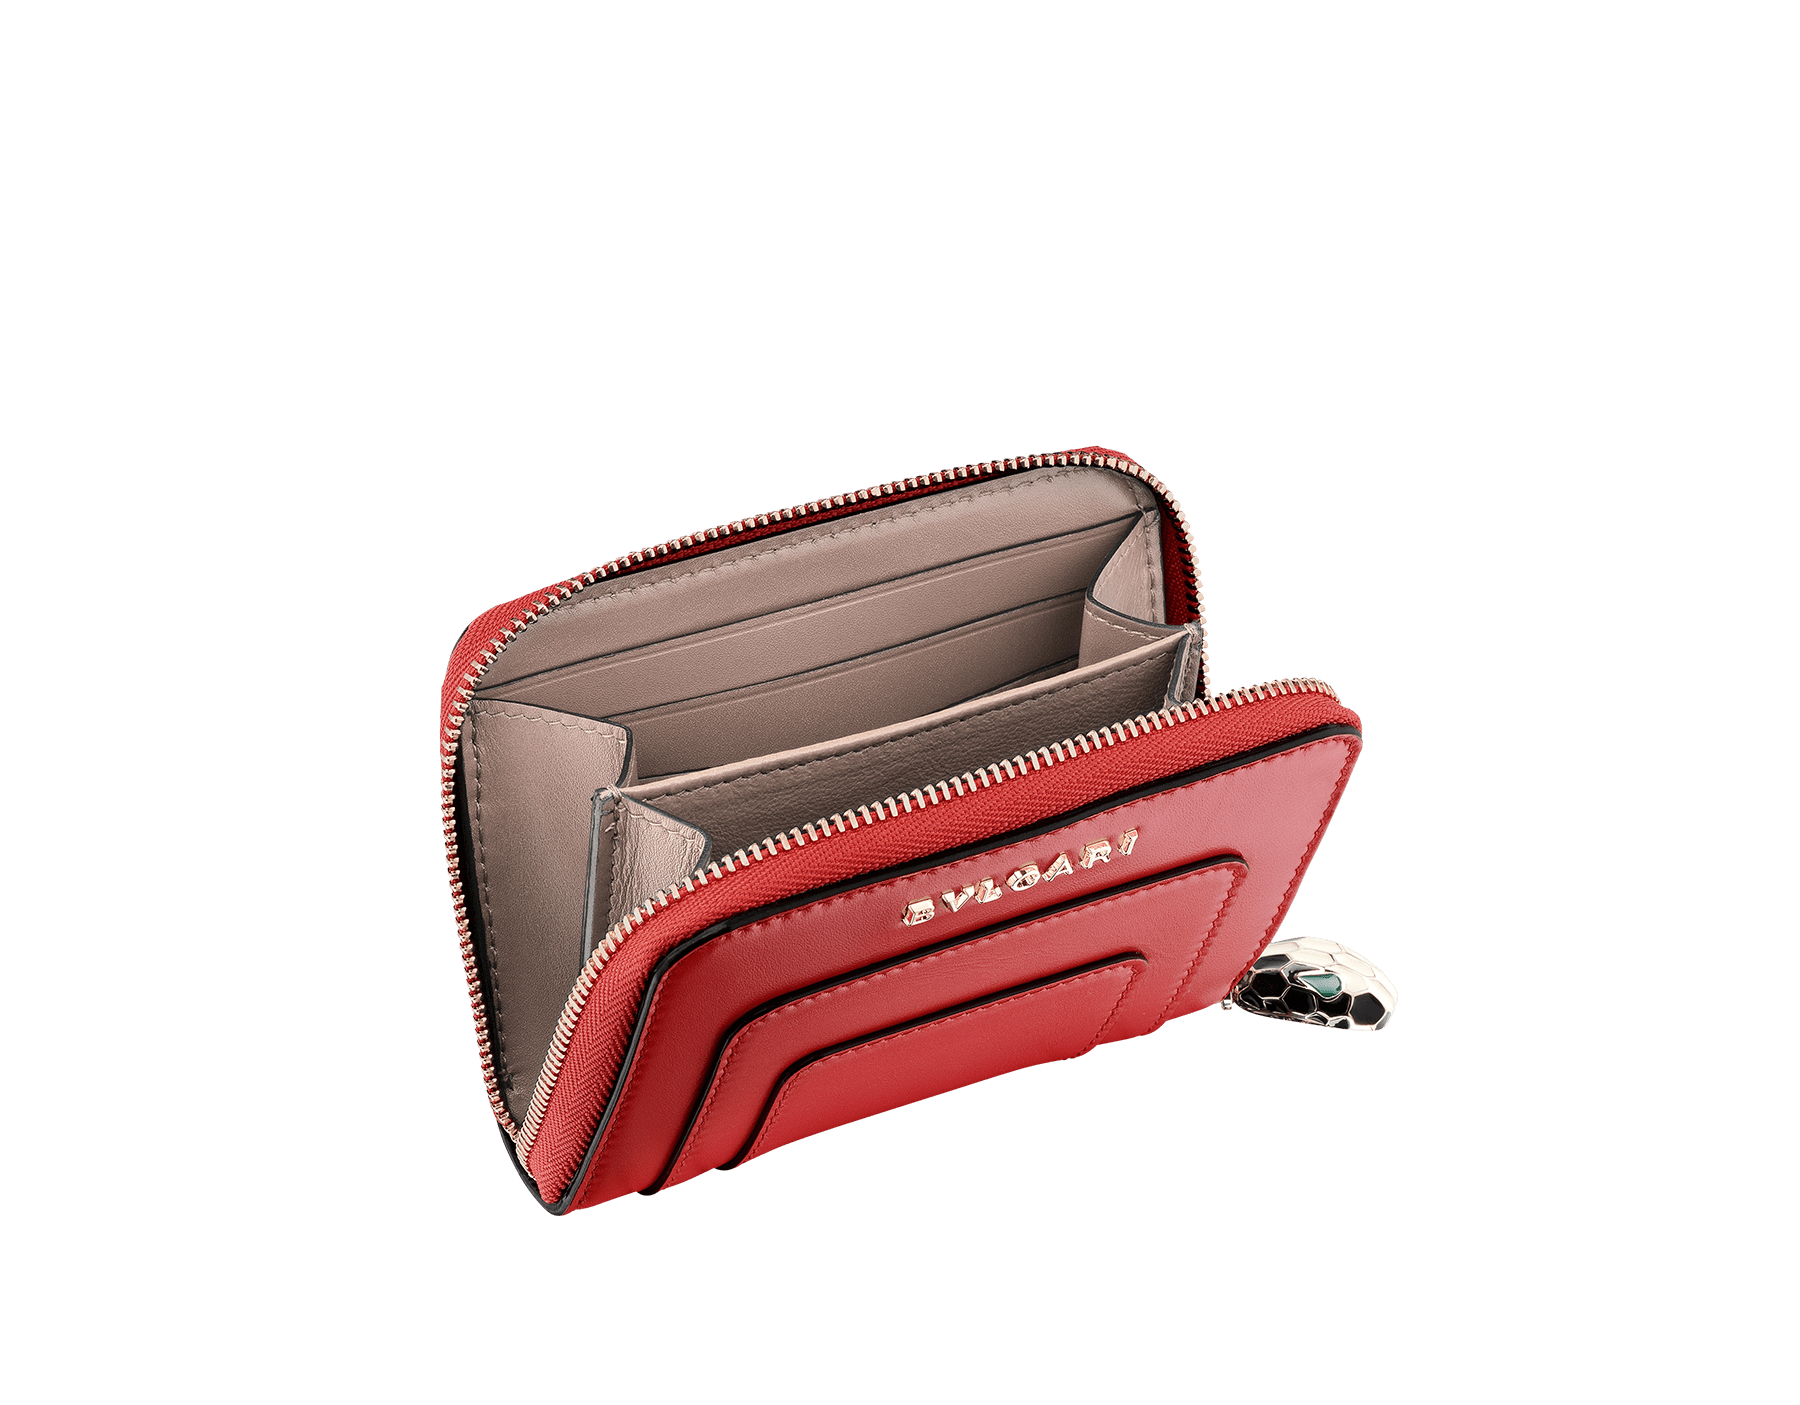 Mini zipped wallet in ruby red and desert quartz calf leather with fuxia nappa lining. Brass light gold plated hardware. Iconic black and white enamel Serpenti head zip puller with green enamel eyes. 281310 image 2